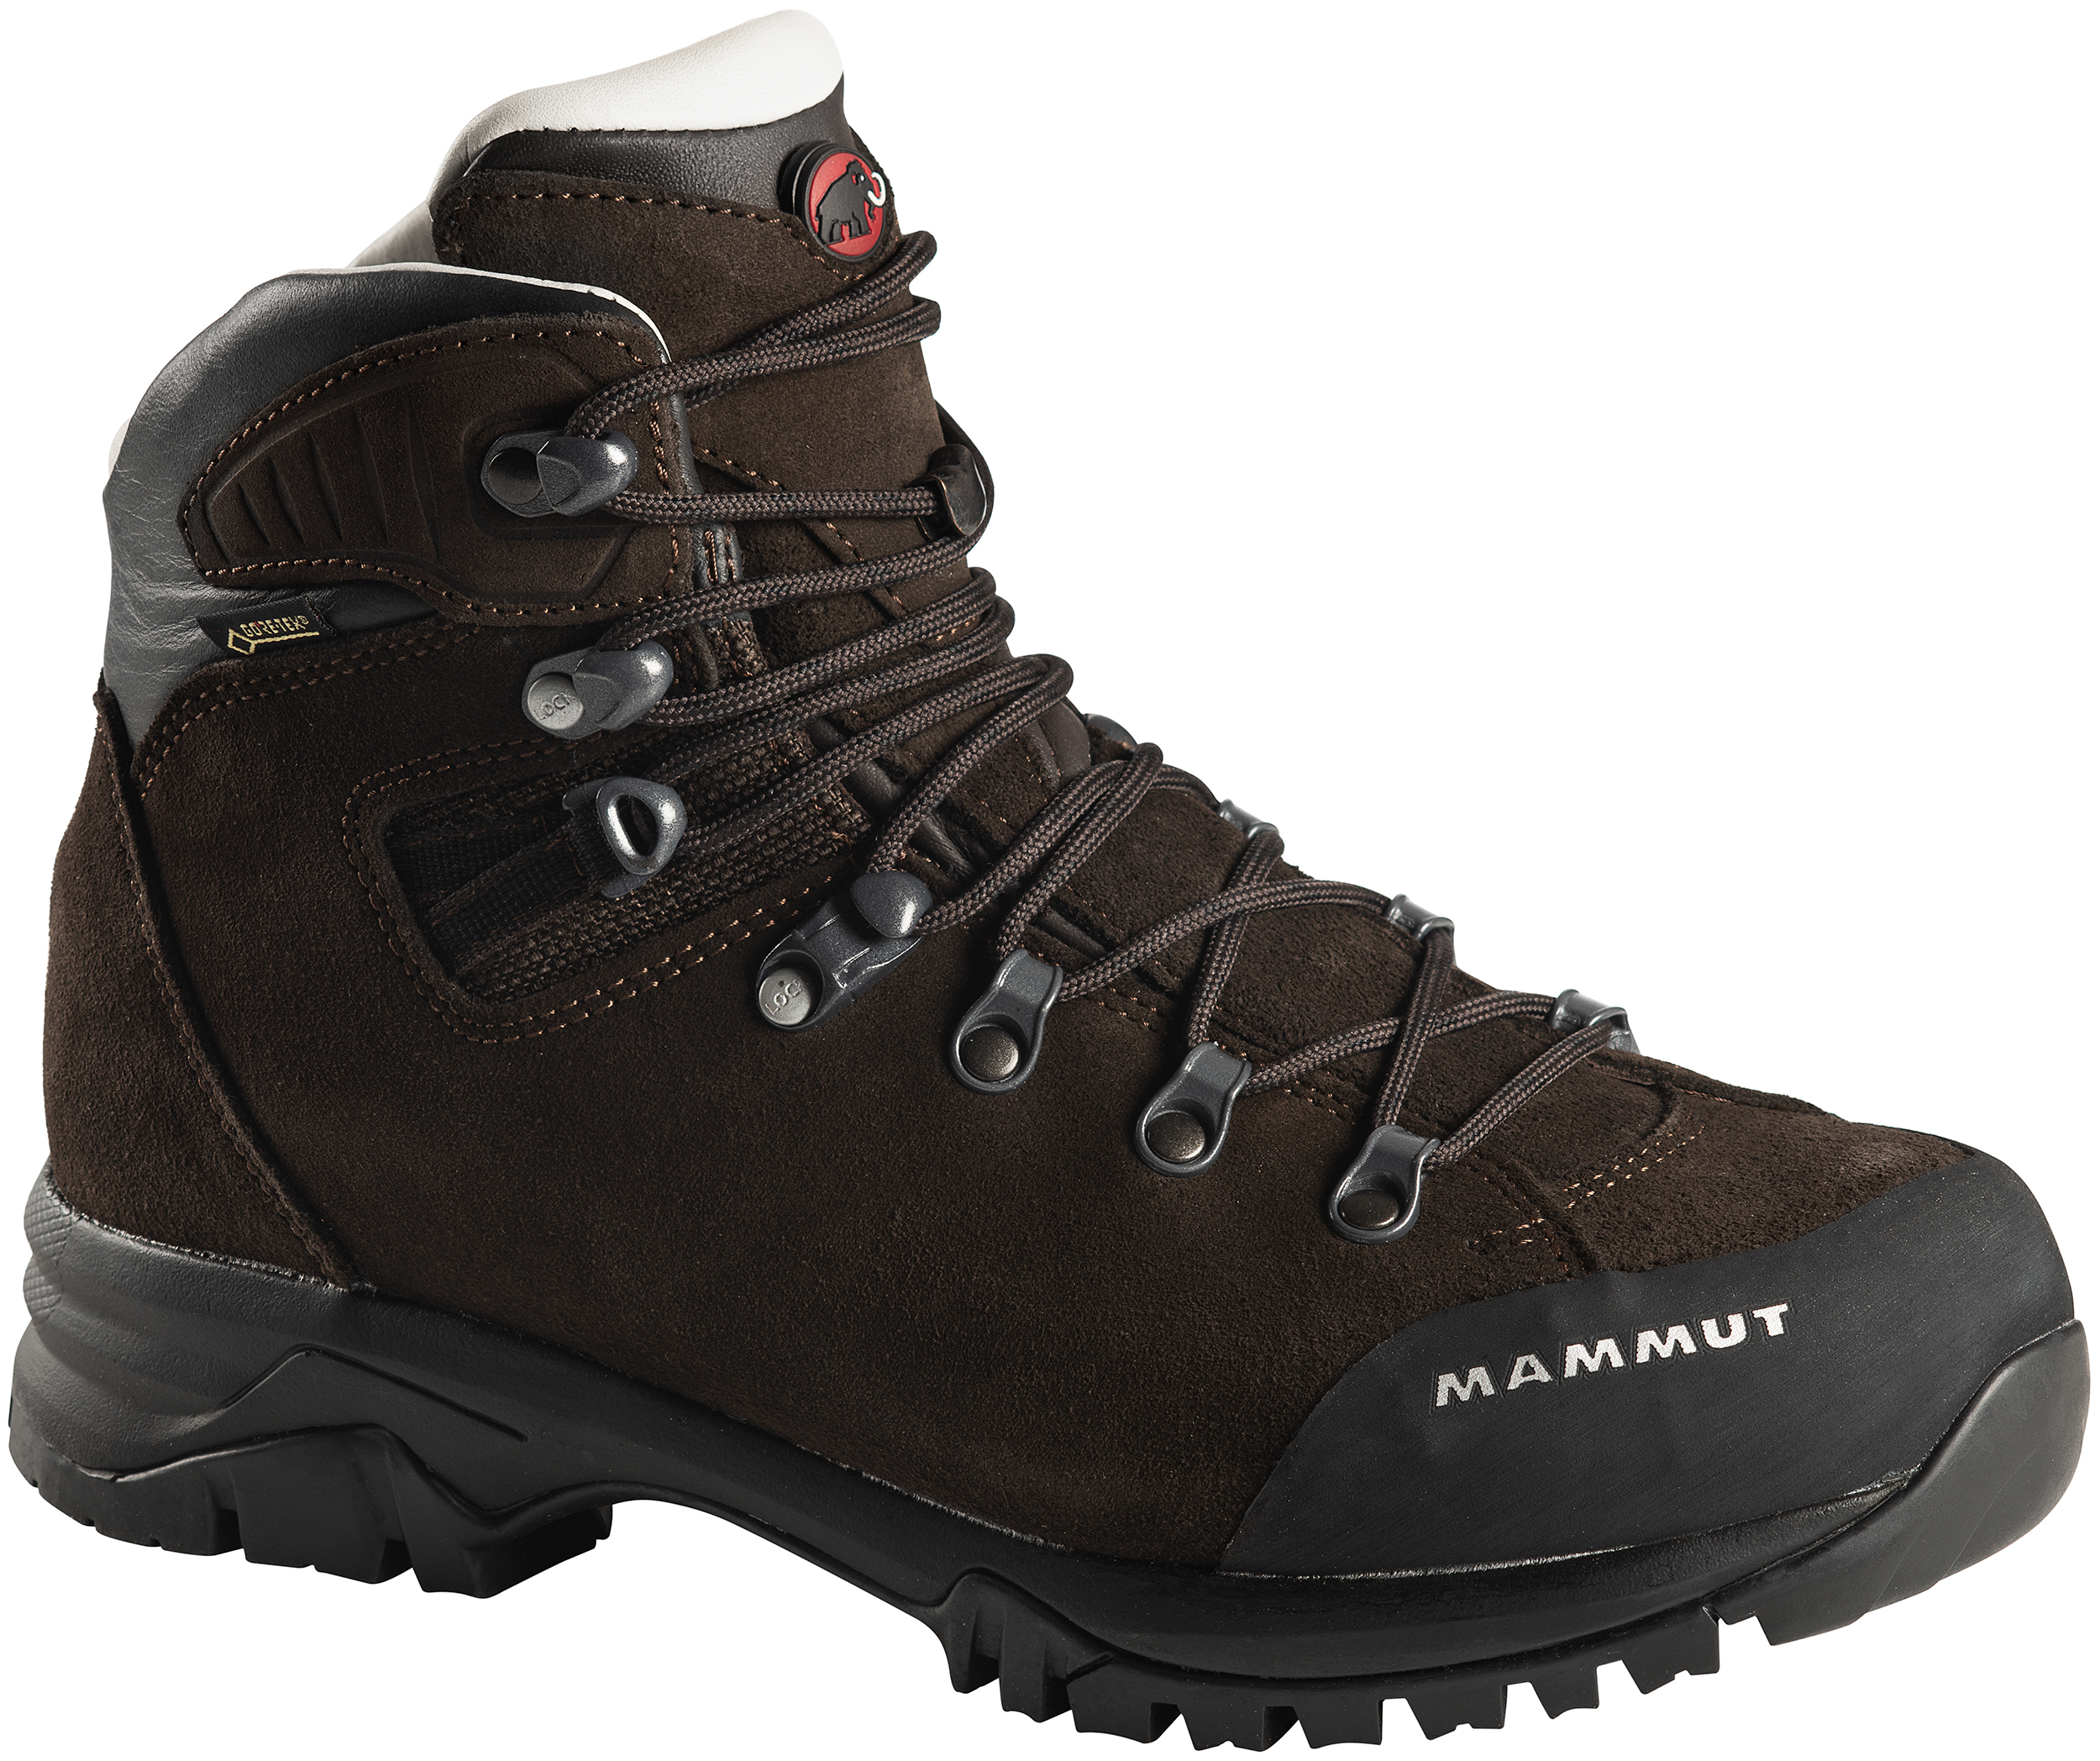 abebebe0545 Hiking boots | MEC